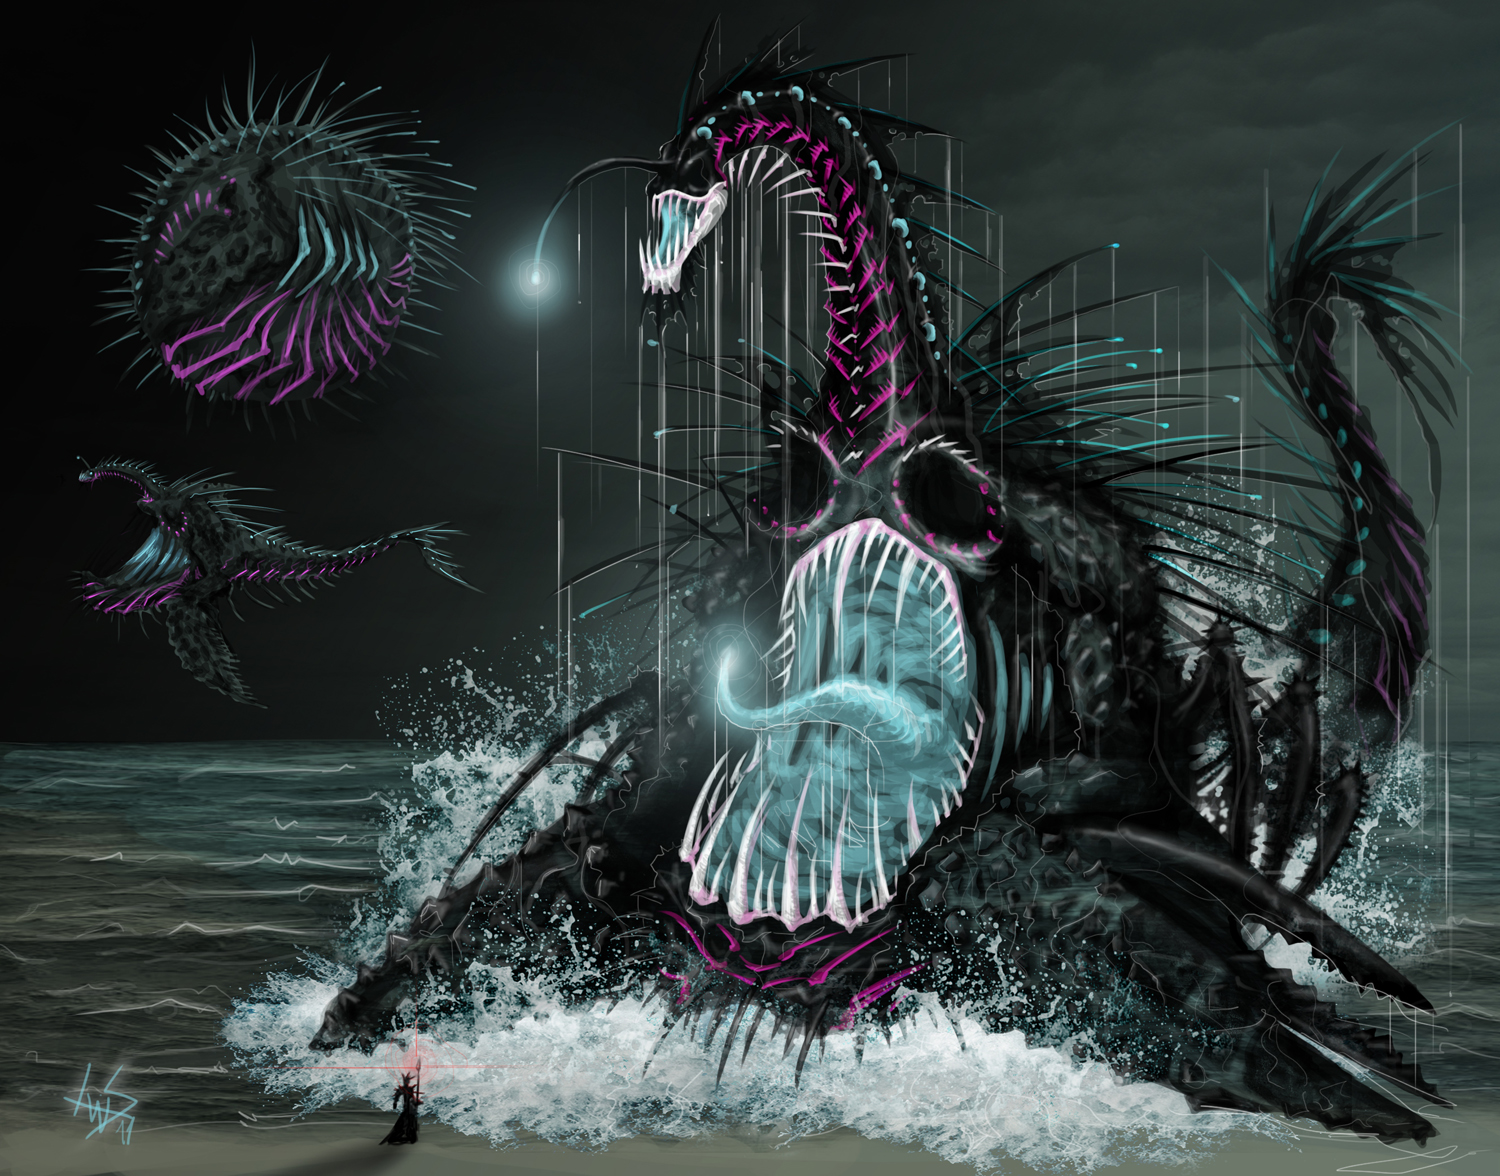 Blind Void Behemoth by ElDoctorGoredealer